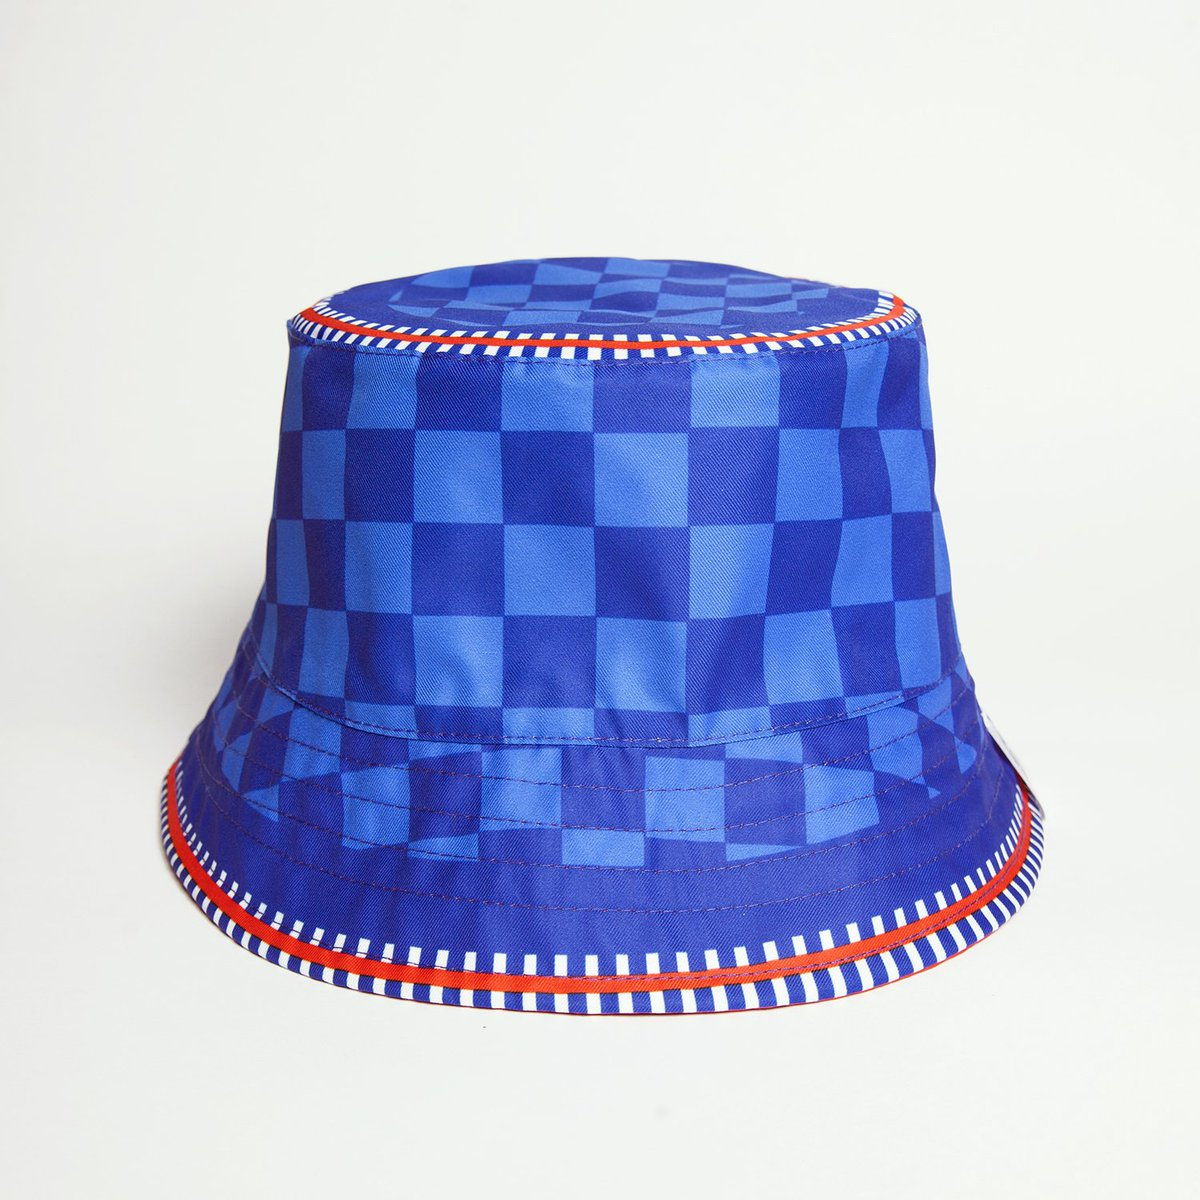 Souness (reversible) Bucket Hats are available at  https   www.footballbobbles.com product souness-bucket-hat  … for  RangersFC  supporters. e8f0e061125